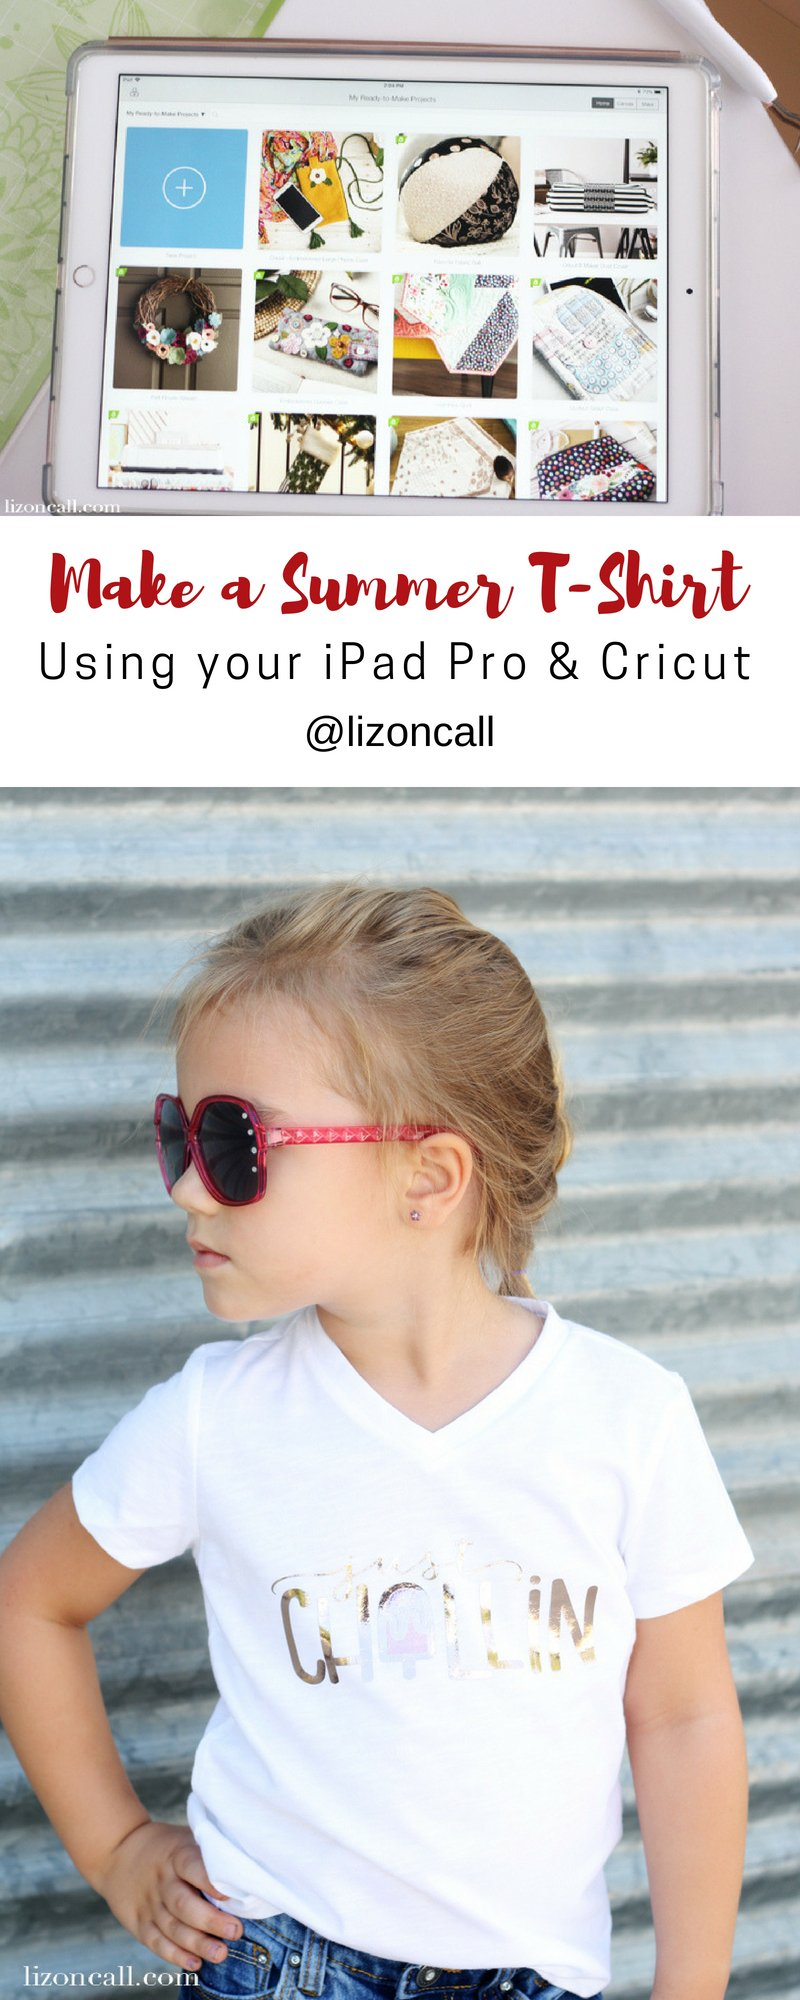 Create a fun DIY shirt without ever having to turn on your computer. Using the right apps on an Apple iPad Pro, you can make a DIY project using just your iPad Pro and Cricut cutting machine. #cricutmade #DIYshirt #ipadpro #procreateapp